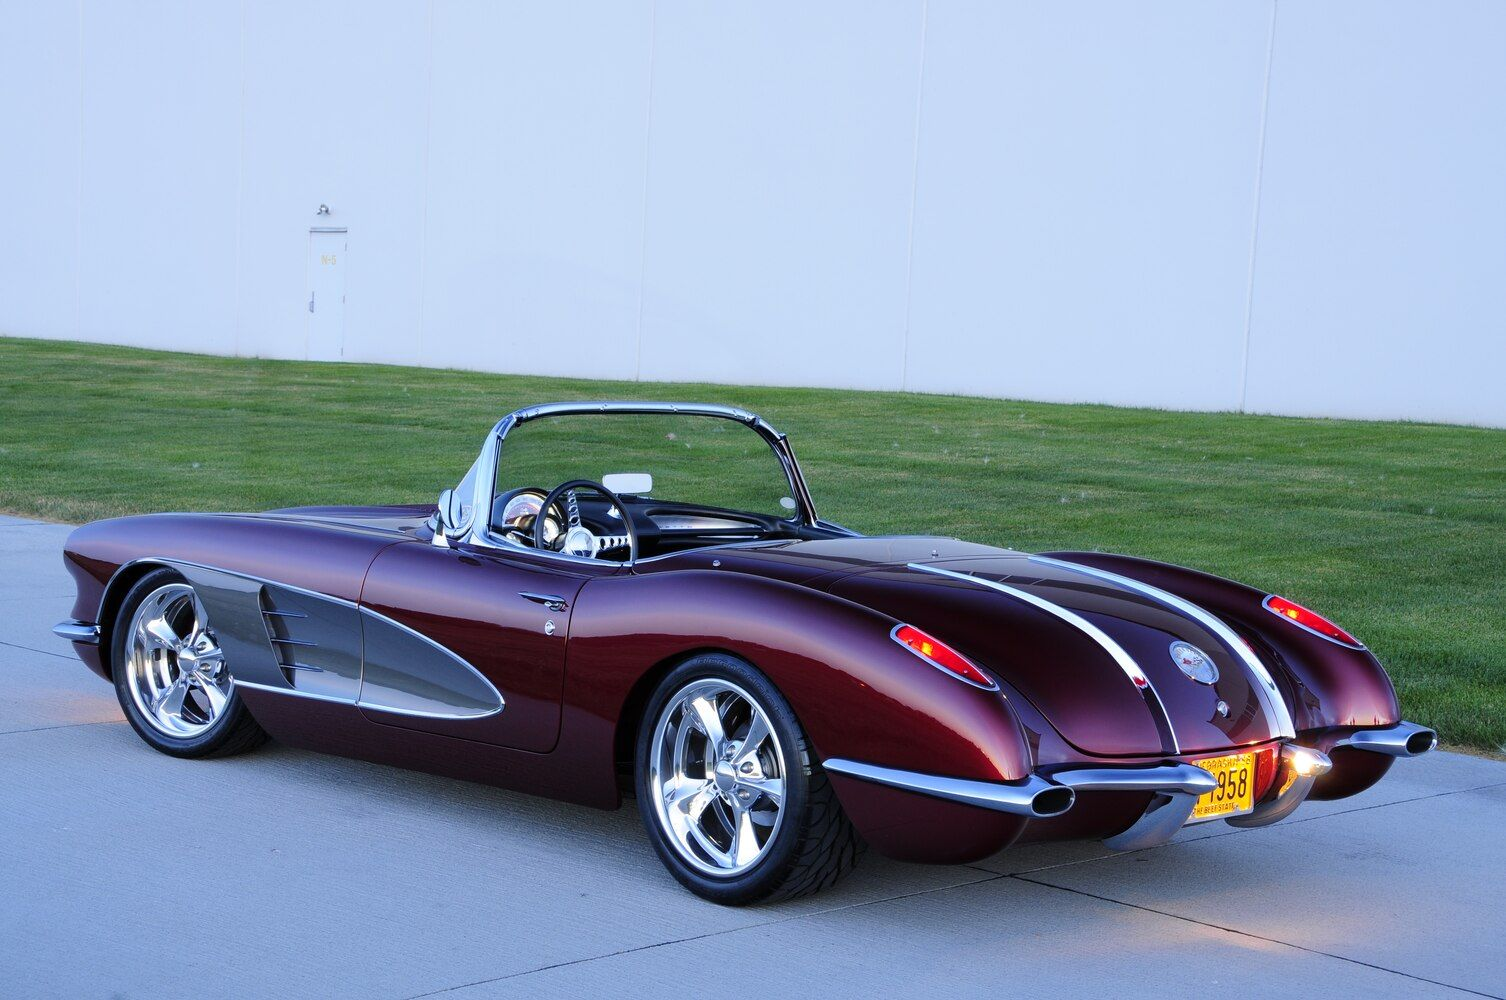 1958 Corvette Combines Old with New Style and Performance